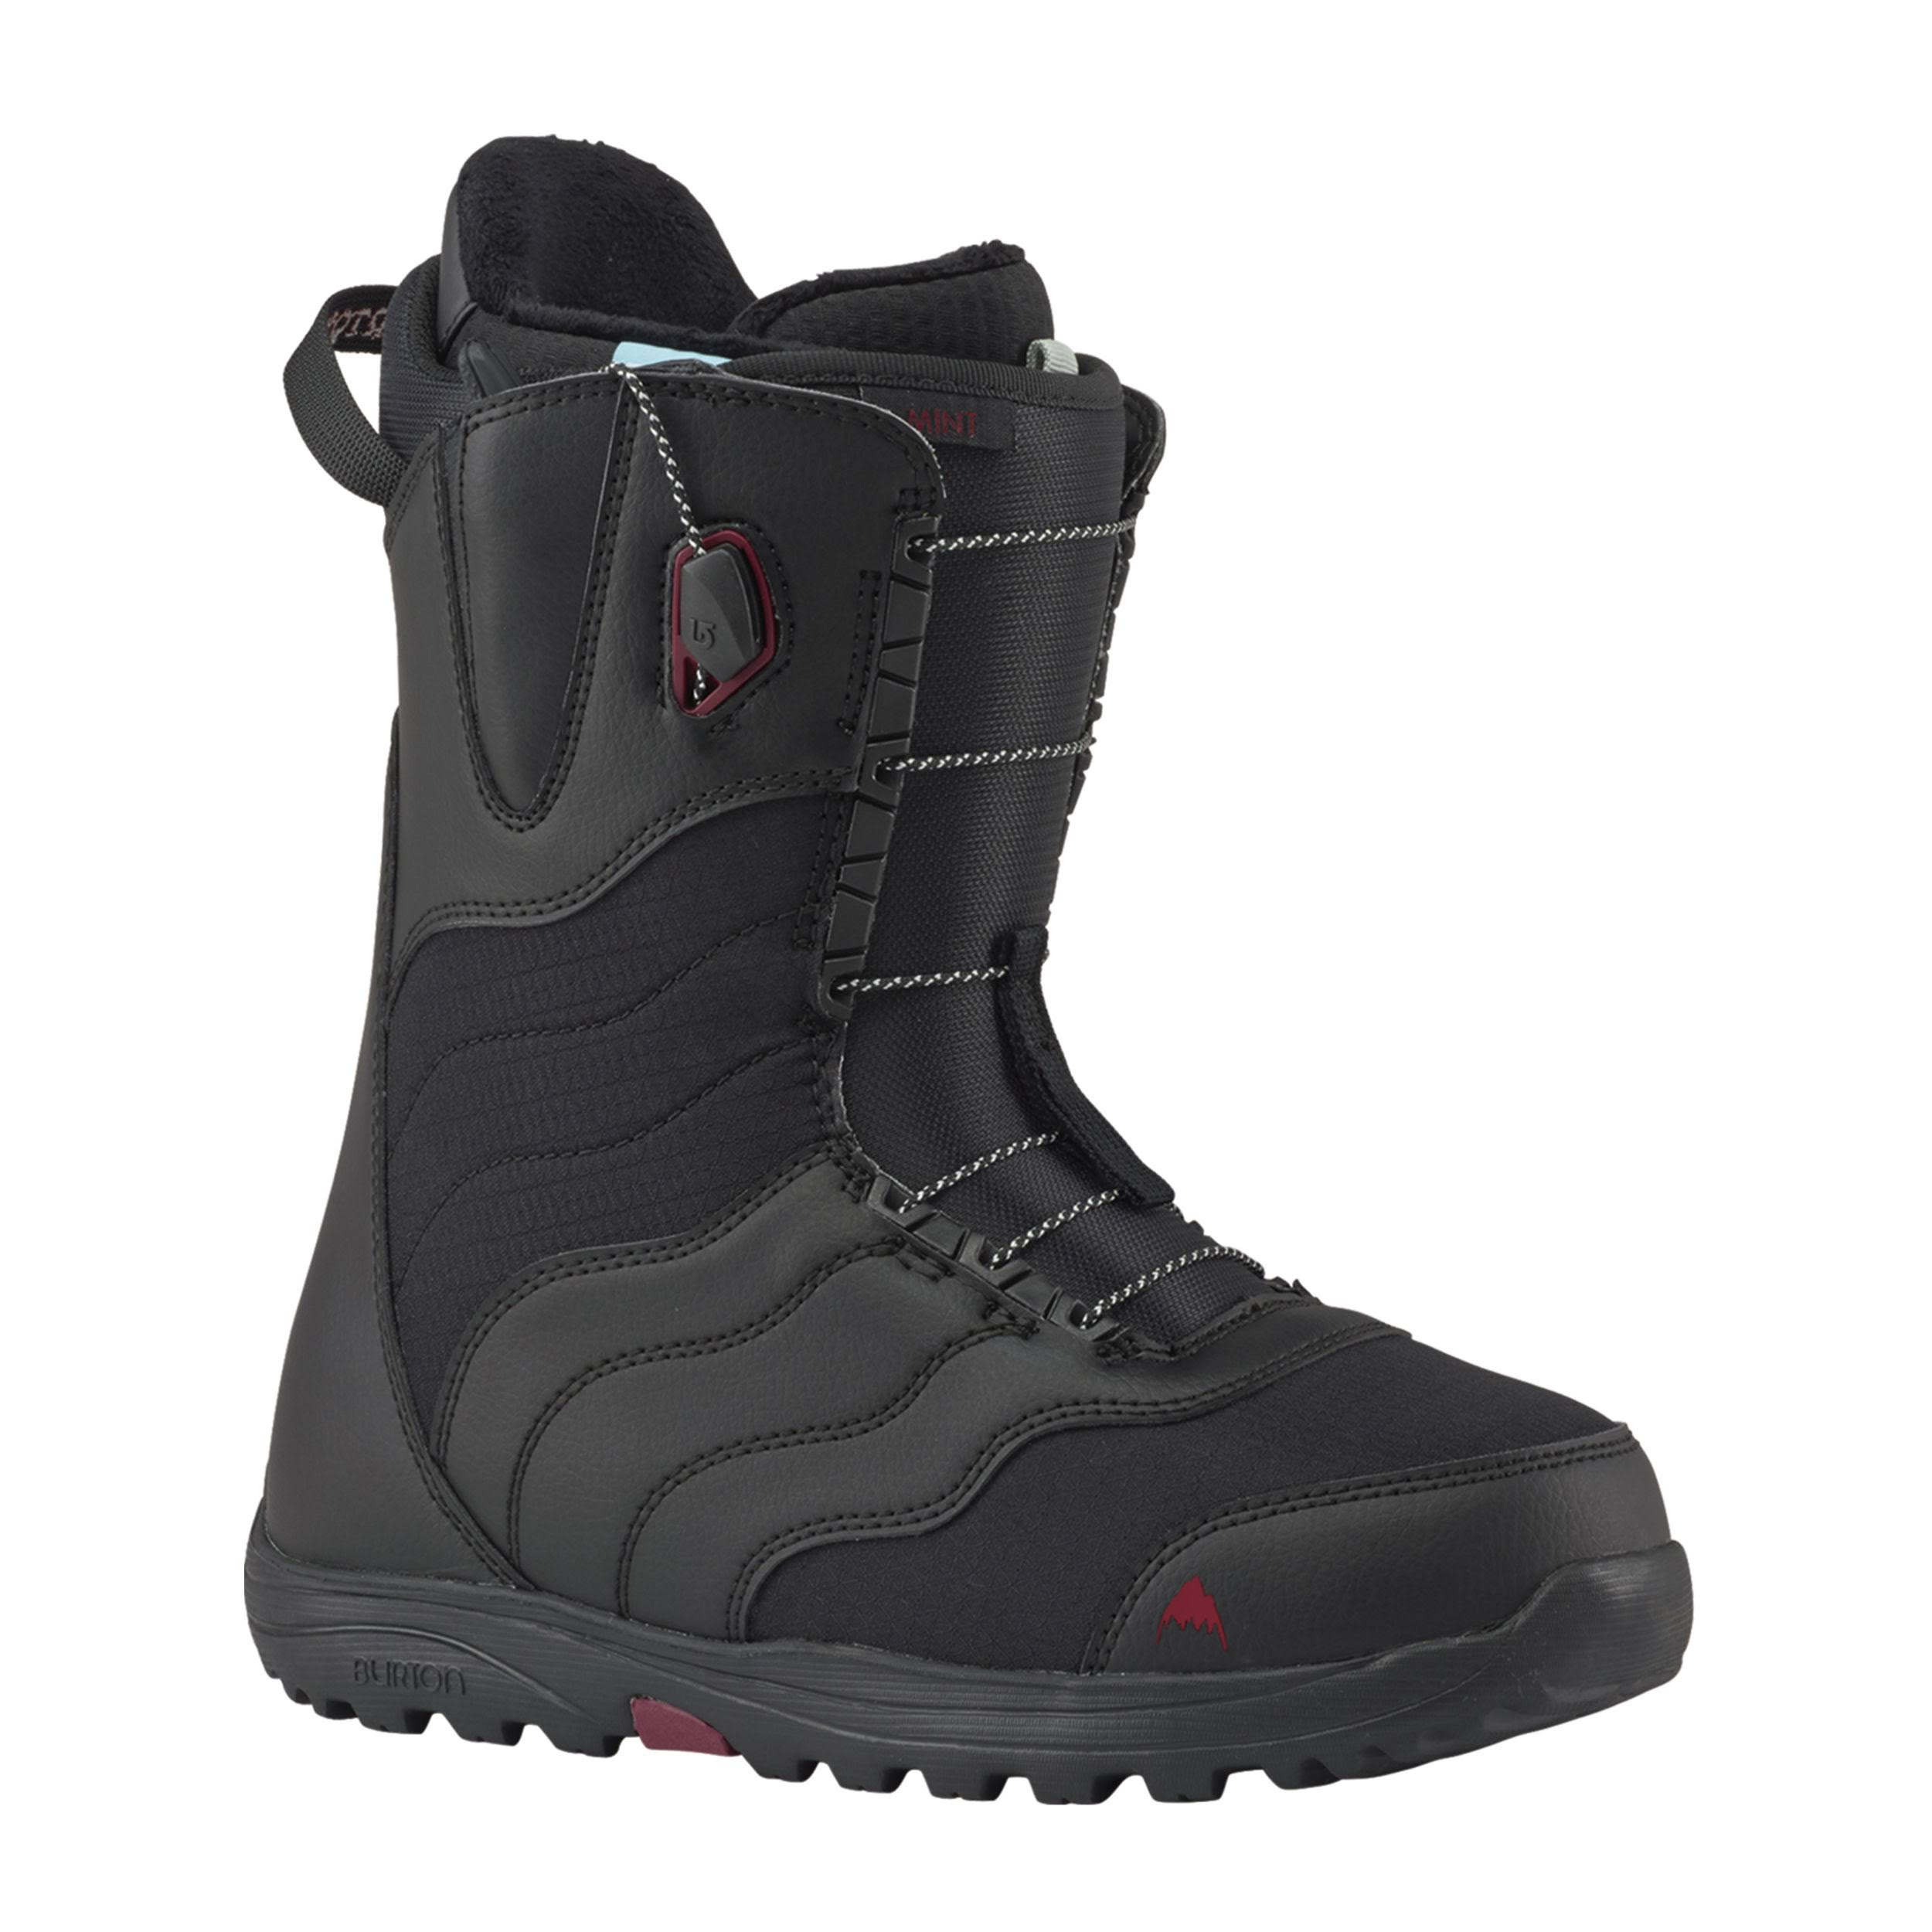 Burton Women's Mint Black Boots